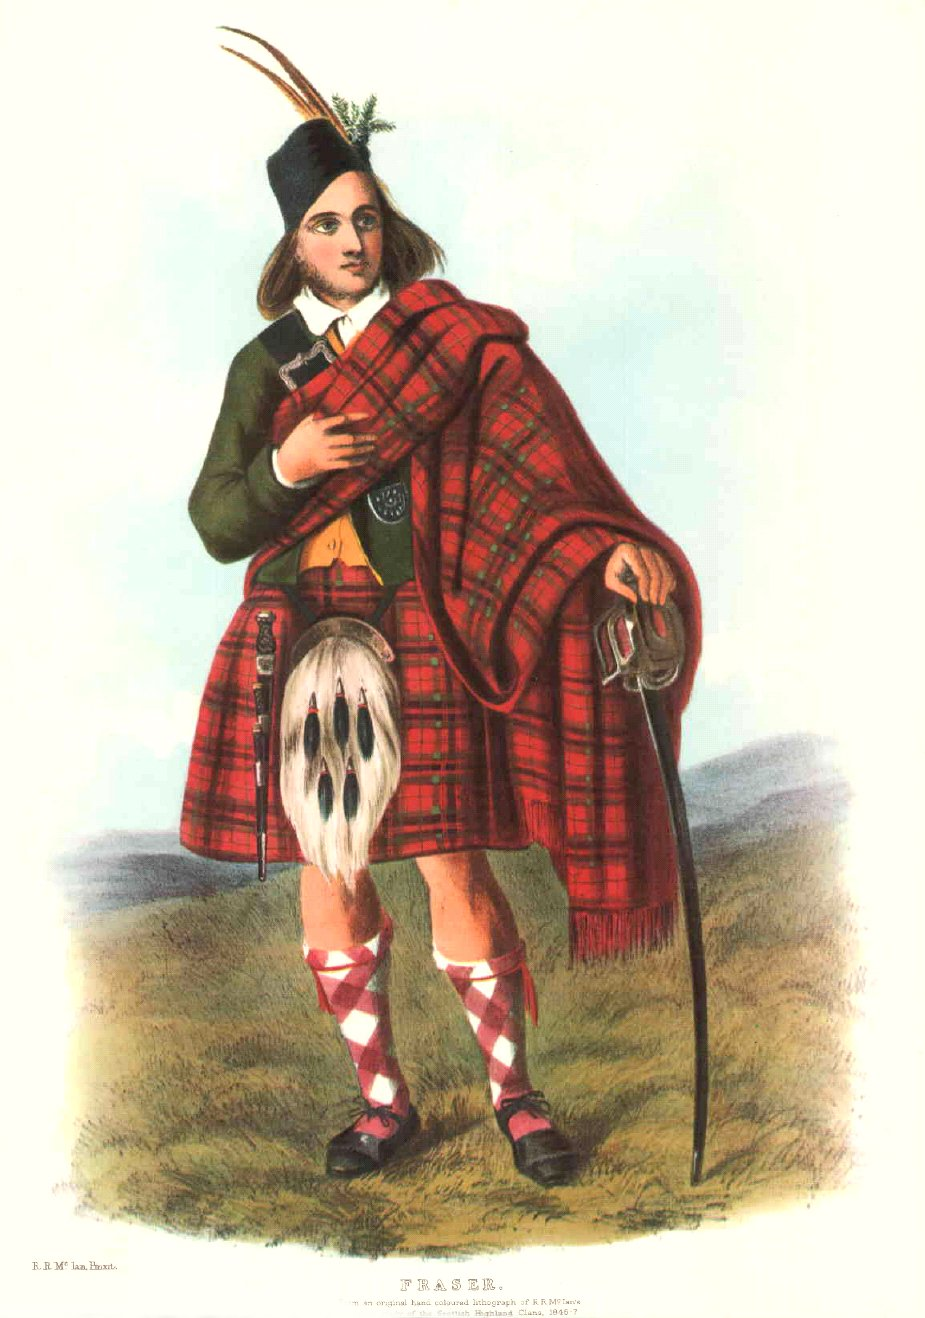 McIan's Costumes of the Clans of Scotland